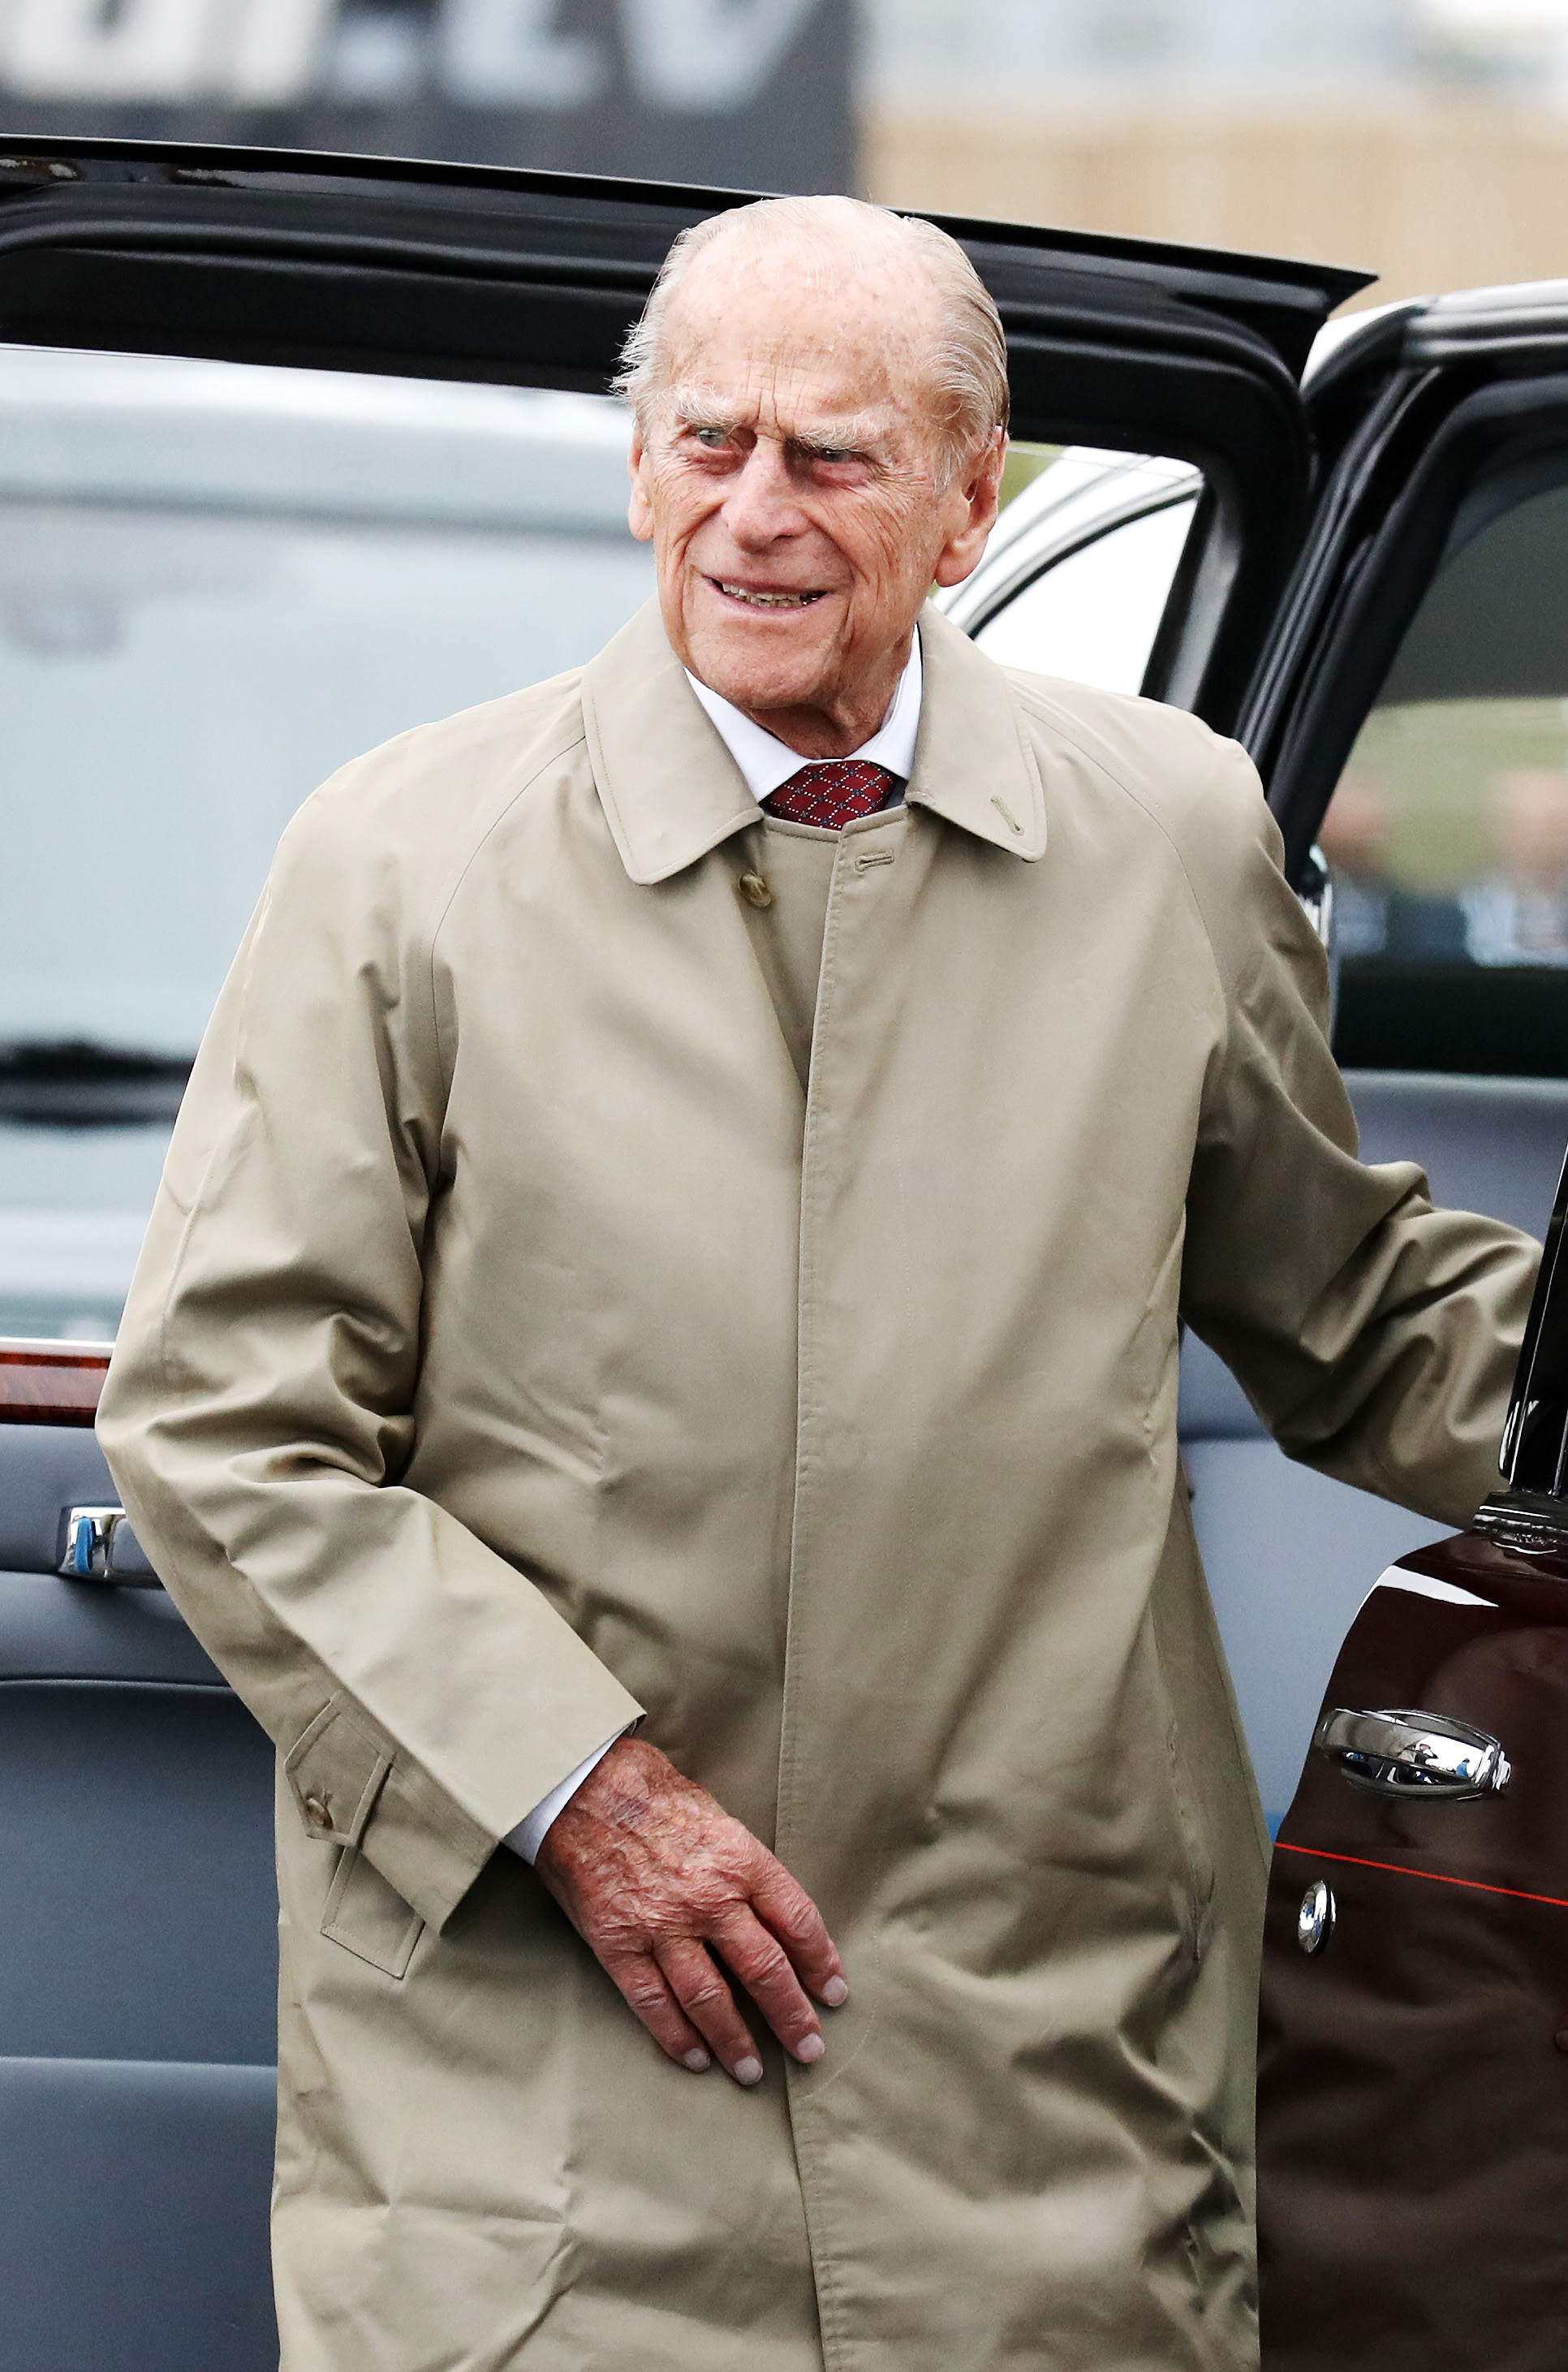 Prince Philip, Duke of Edinburgh, attends the official opening ceremony of the Queensferry Crossing, on September 4, 2017, in South Queensferry, Scotland. (Getty Images)